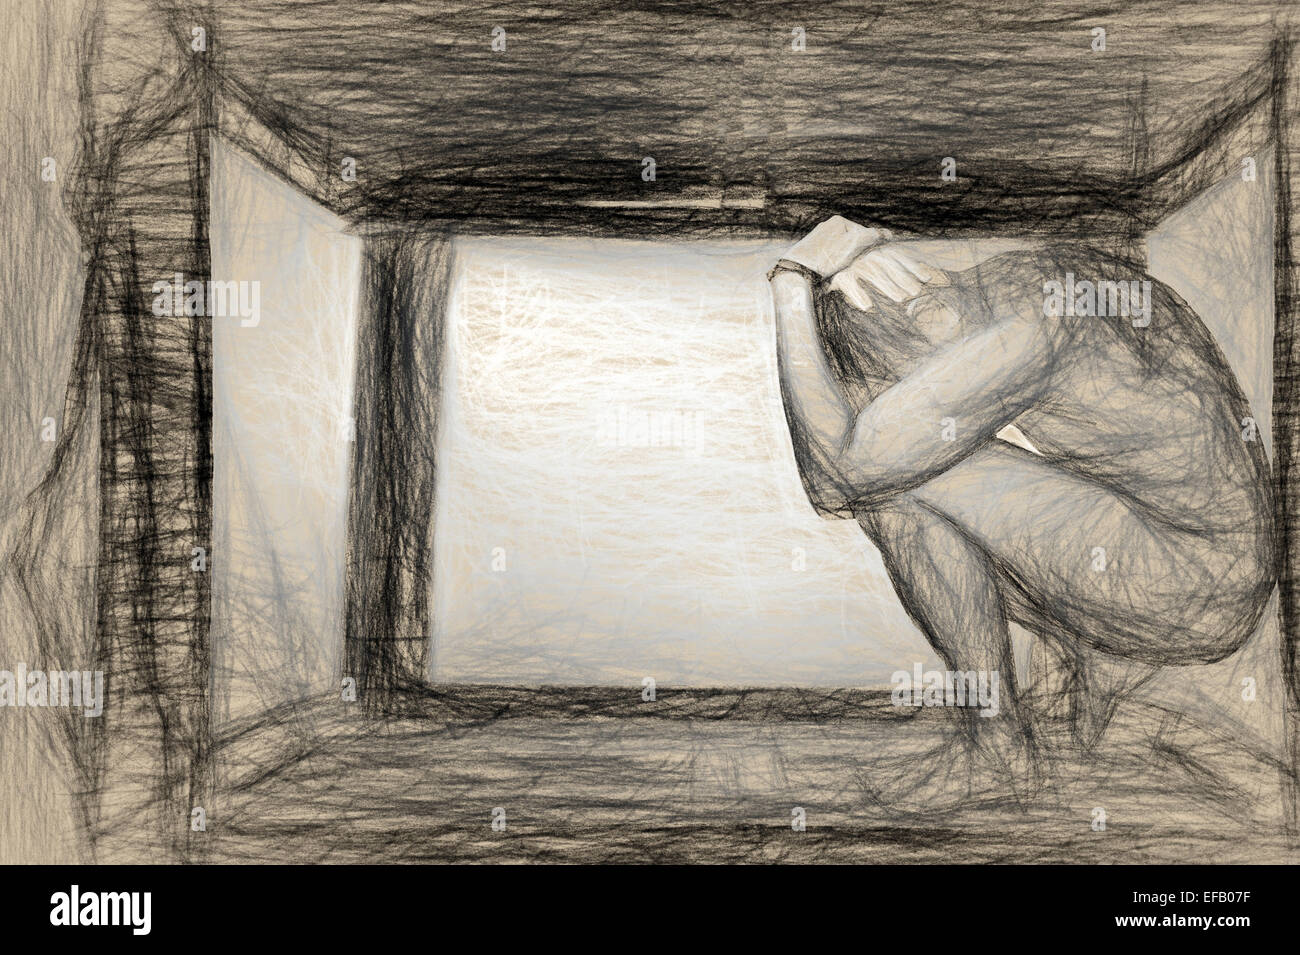 Recluse and Introvert - we all hide in boxes. - Stock Image